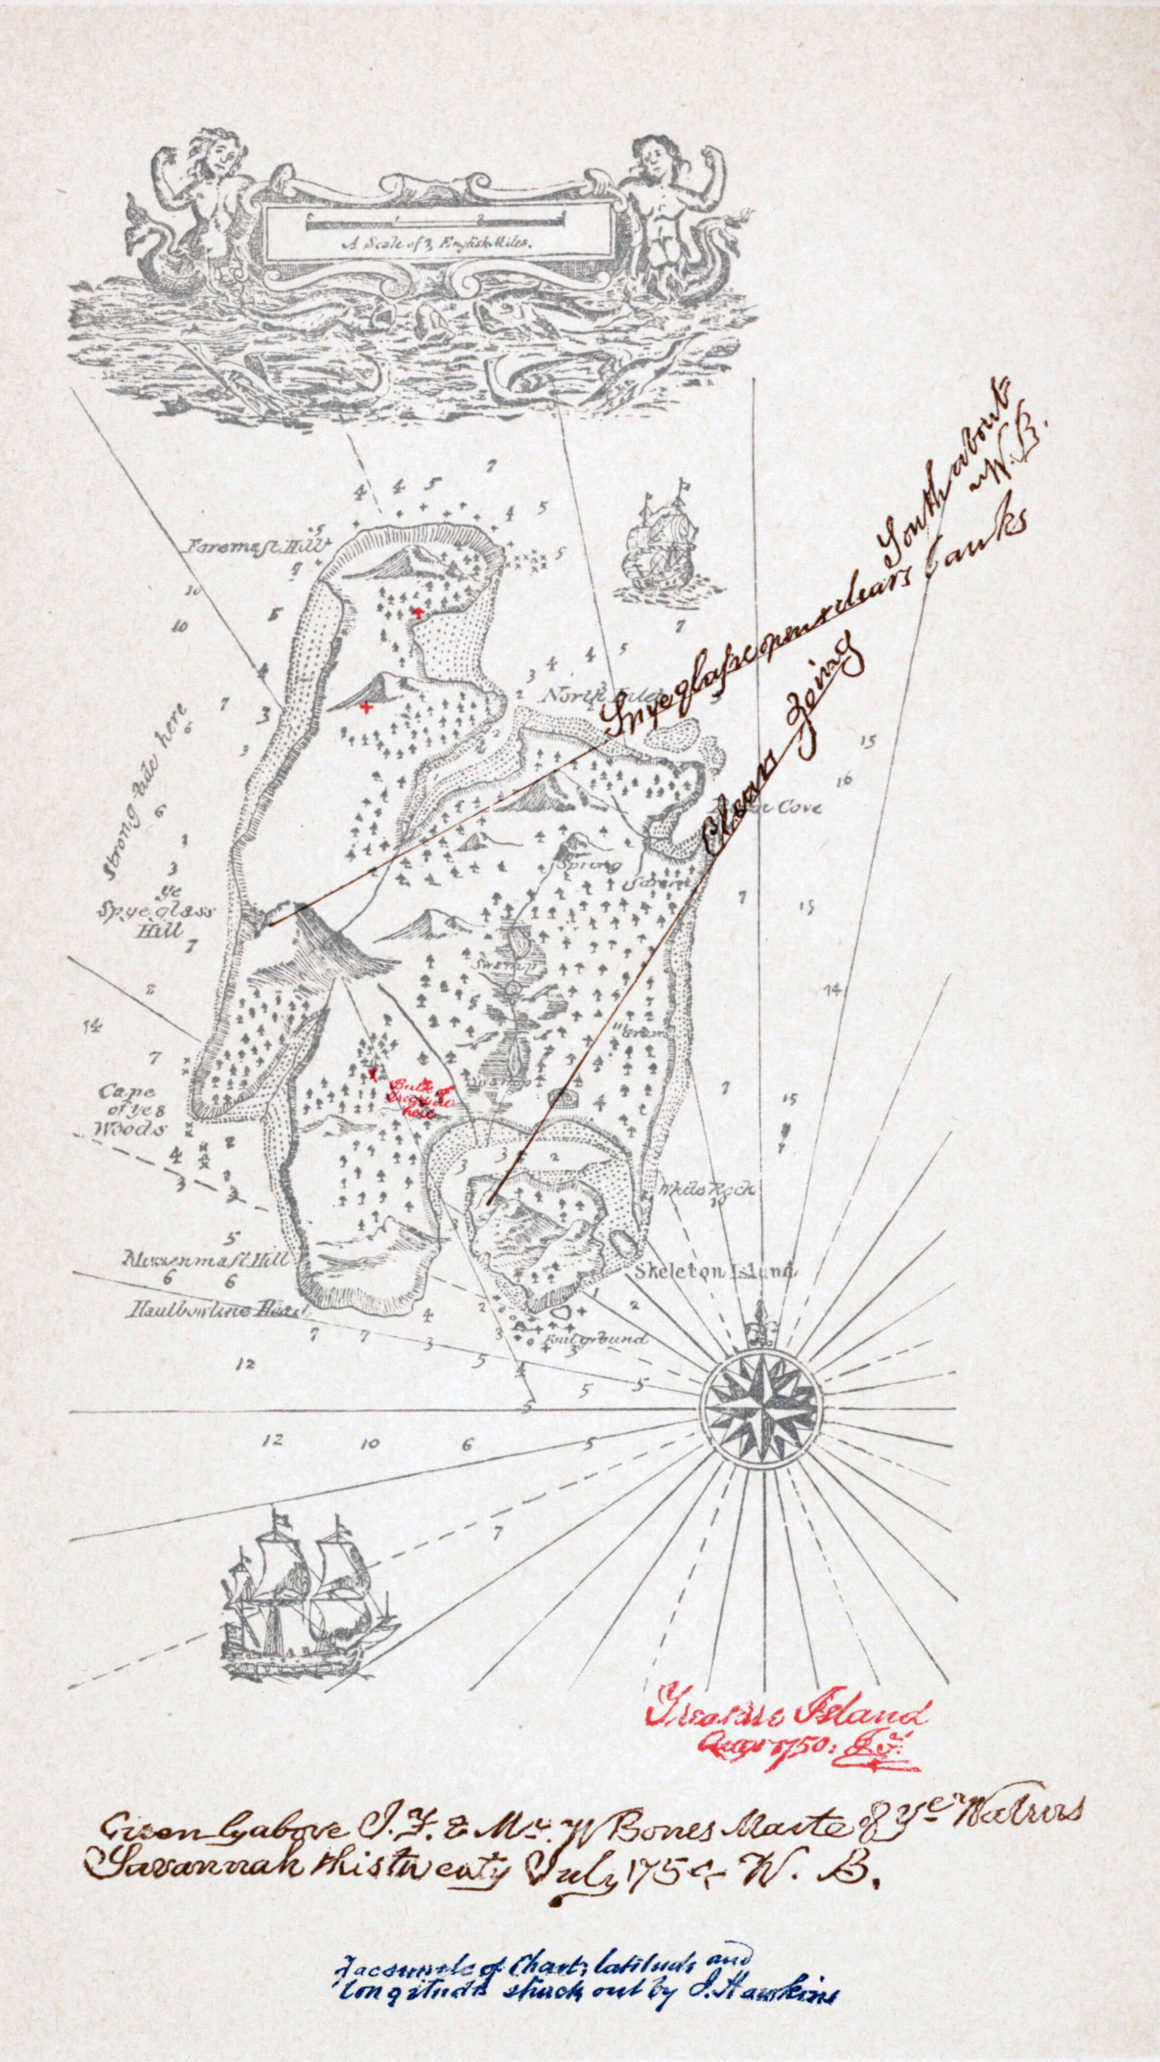 Robert Louis Stevenson's map of Treasure Island (Source: Wikipedia)